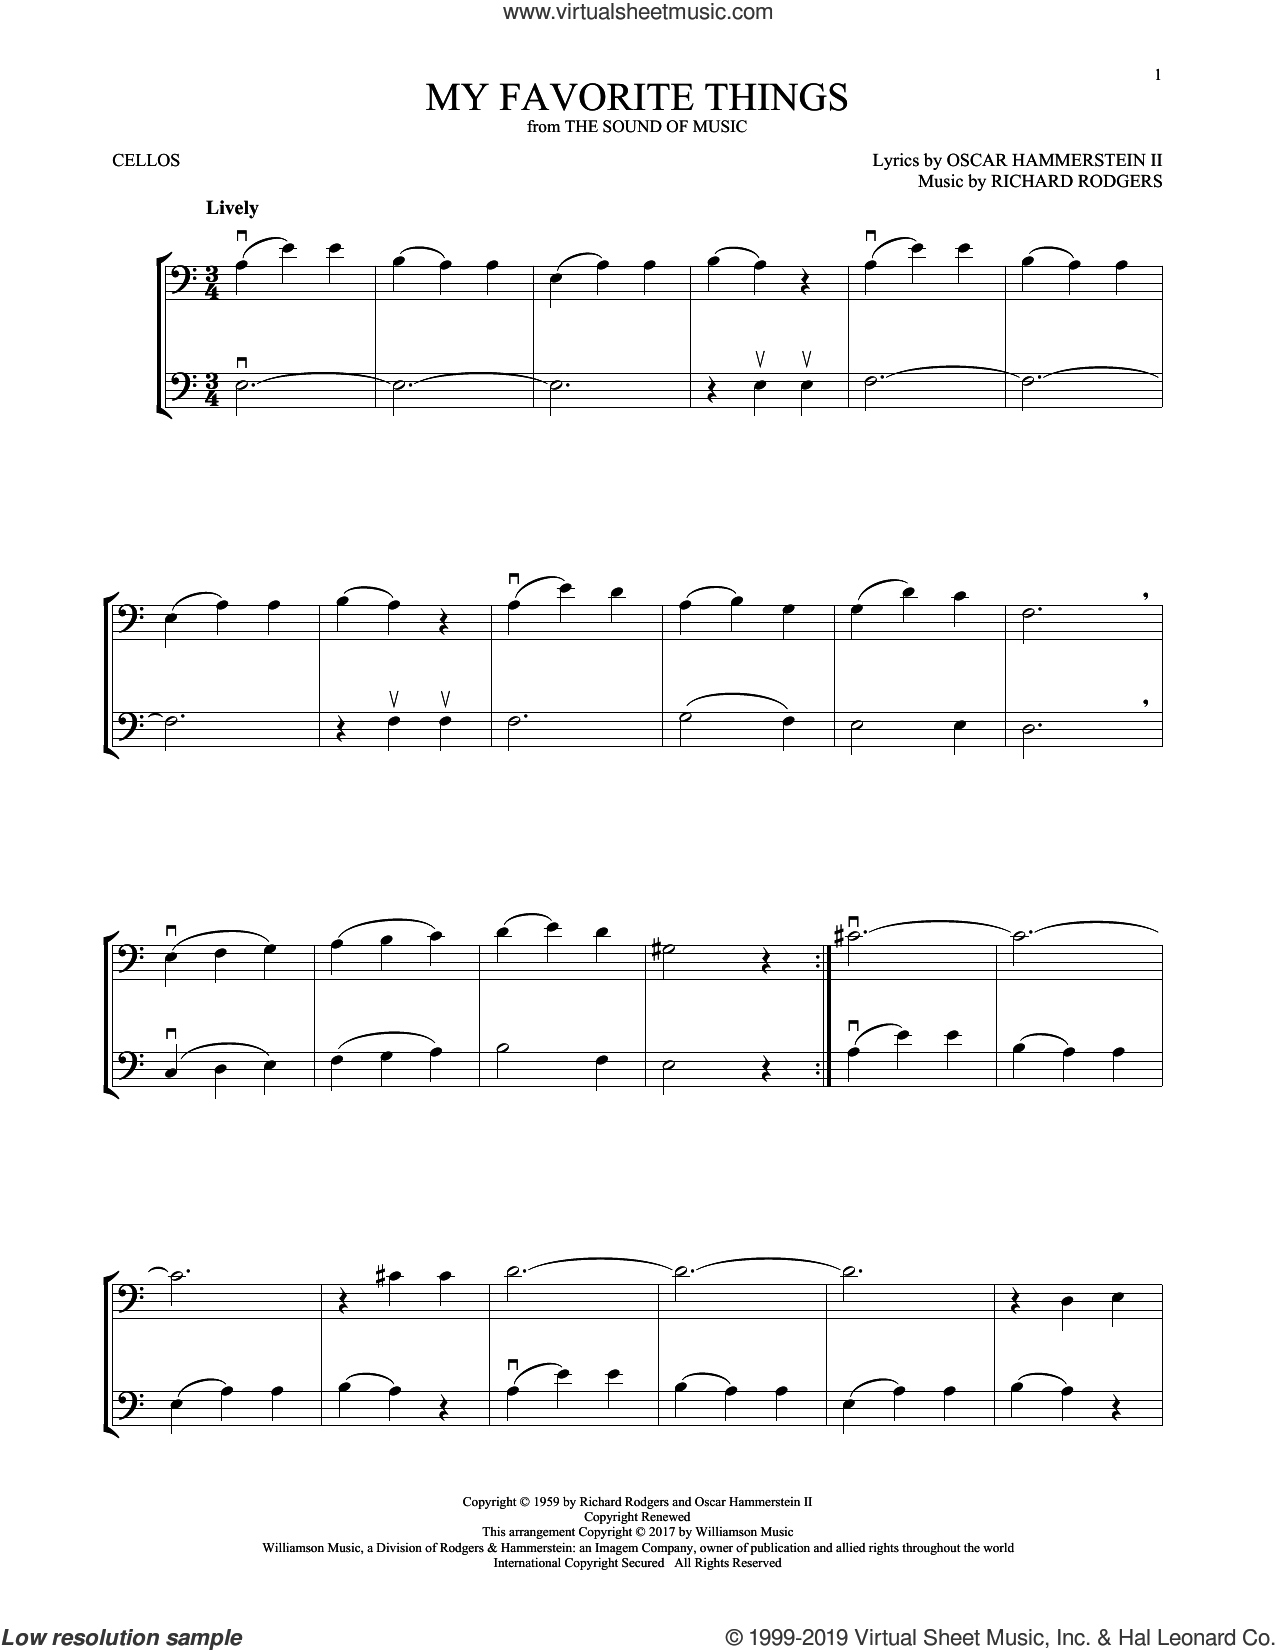 My Favorite Things (from The Sound Of Music) sheet music for two cellos (duet, duets) by Rodgers & Hammerstein, Oscar II Hammerstein and Richard Rodgers, intermediate skill level